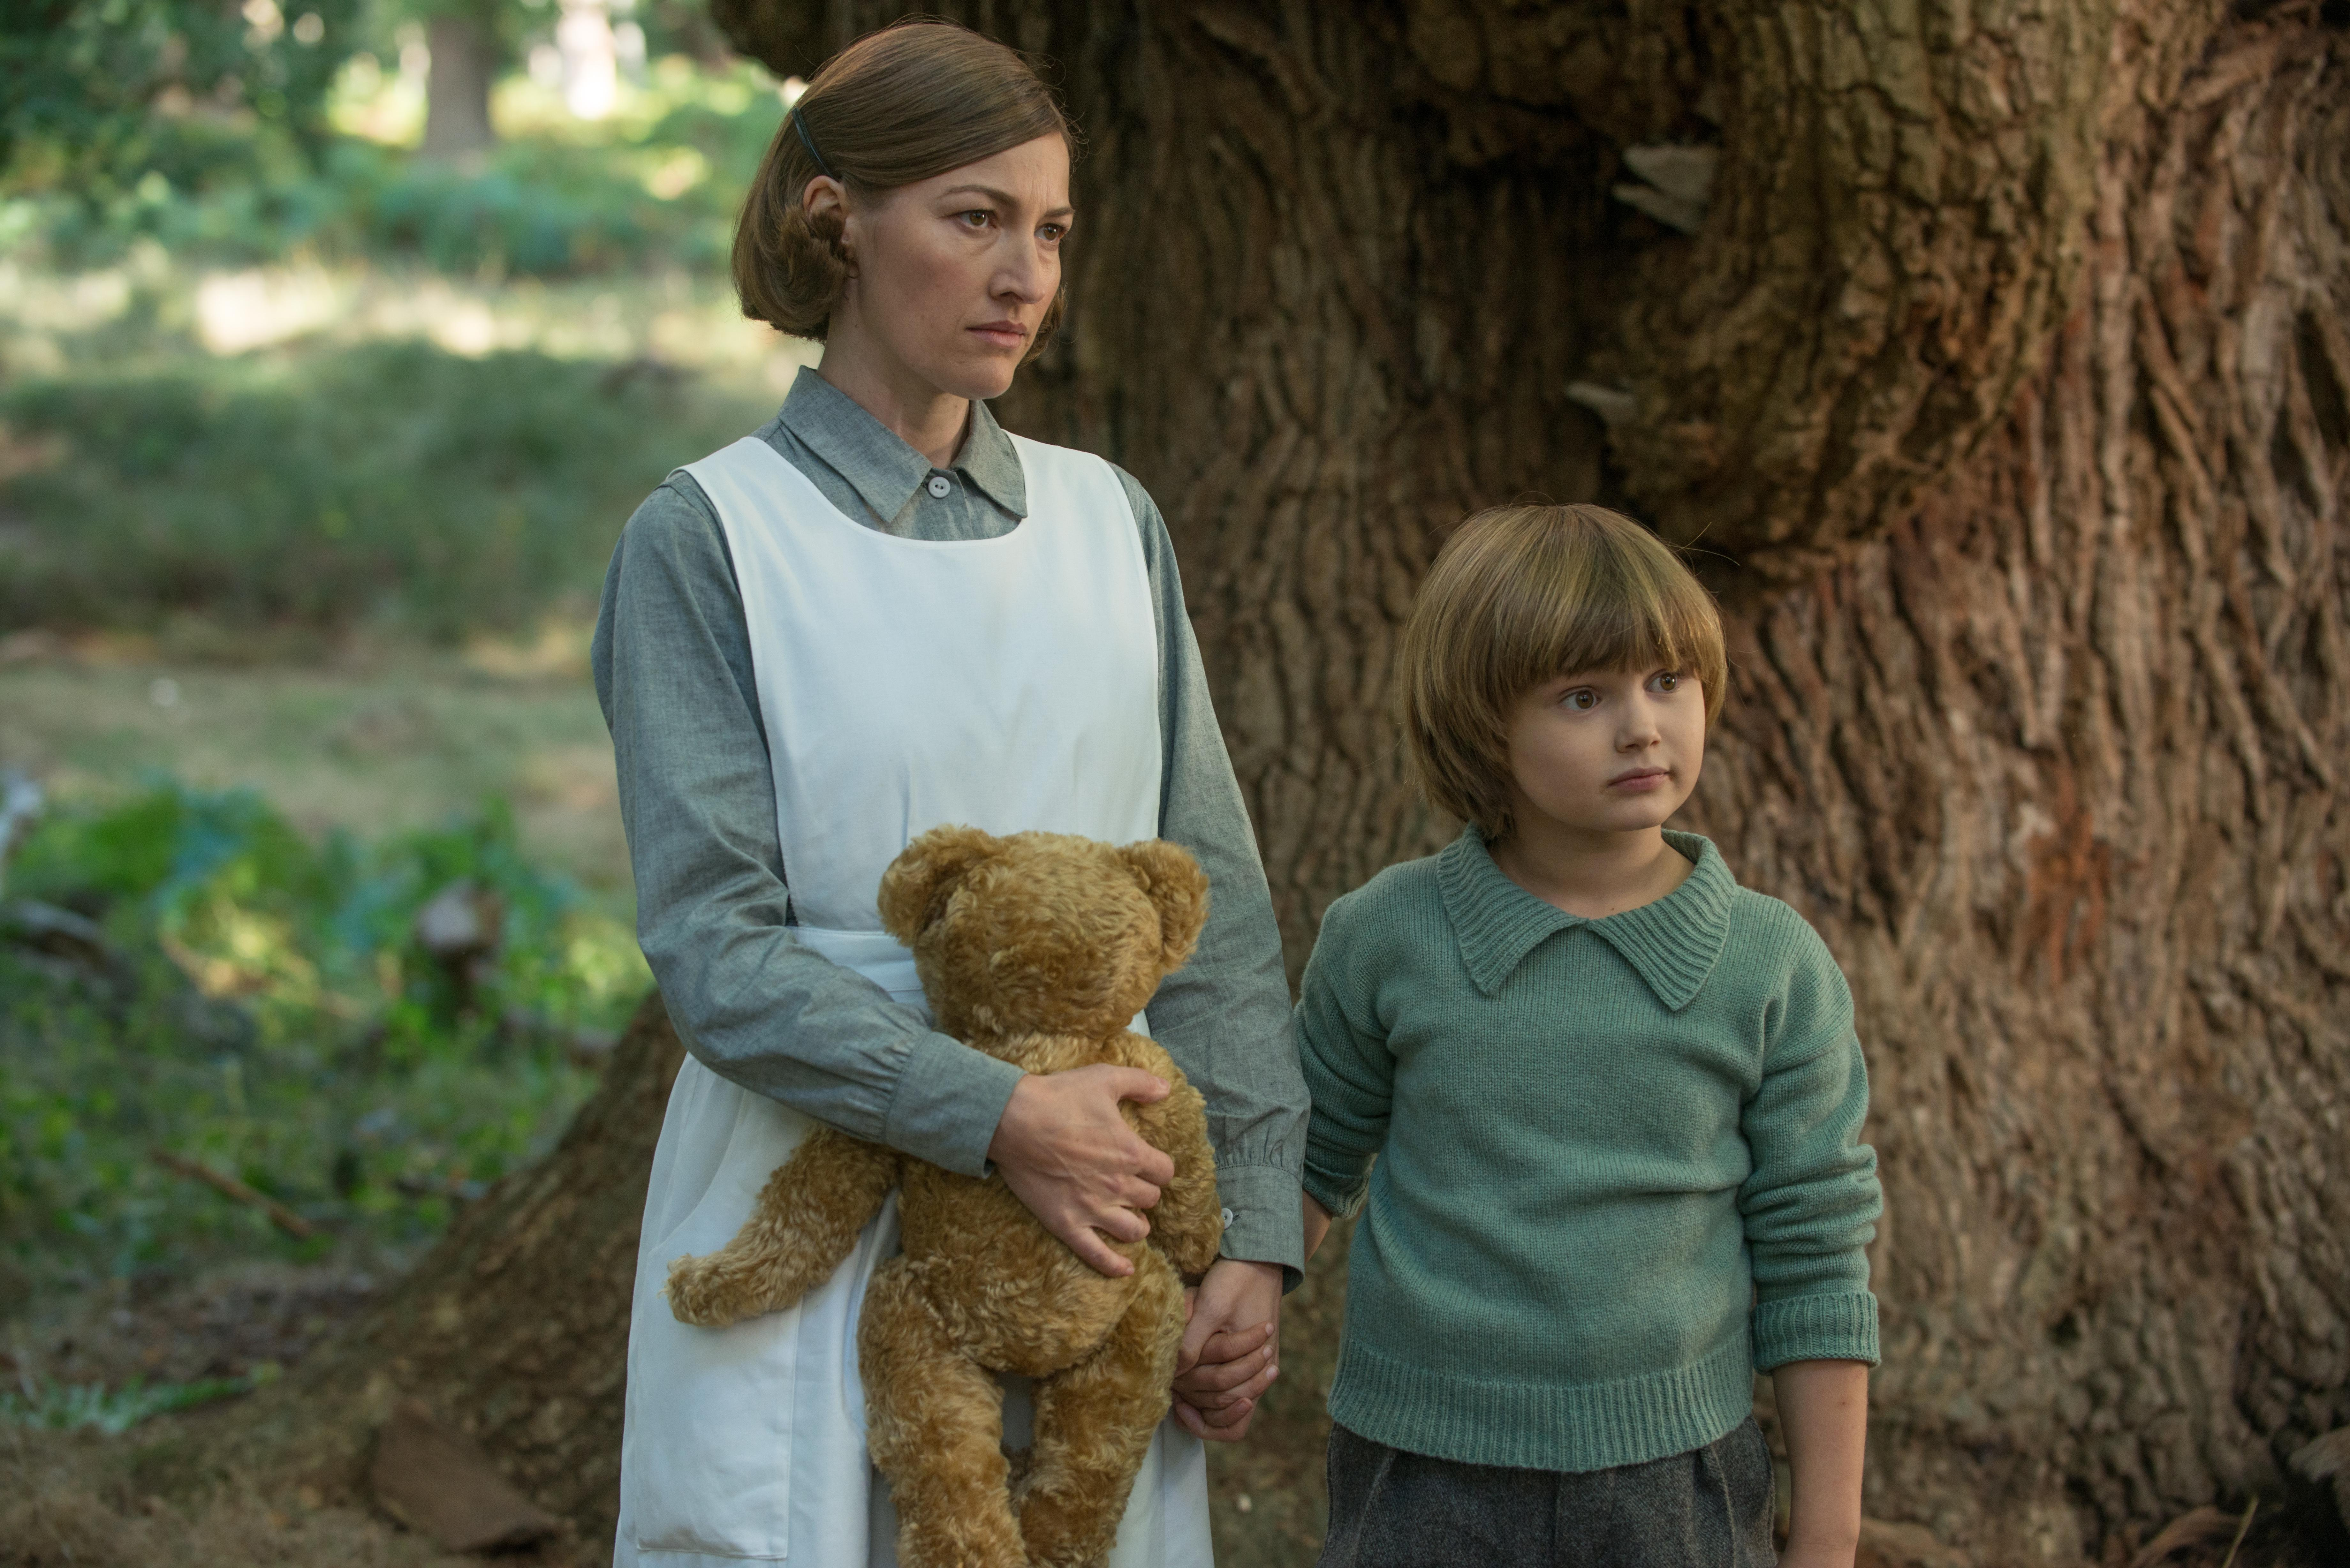 Kelly MacDonald and Will Tilston in the film GOODBYE CHRISTOPHER ROBIN. Photo by David Appleby. © 2017 Twentieth Century Fox Film Corporation All Rights Reserved